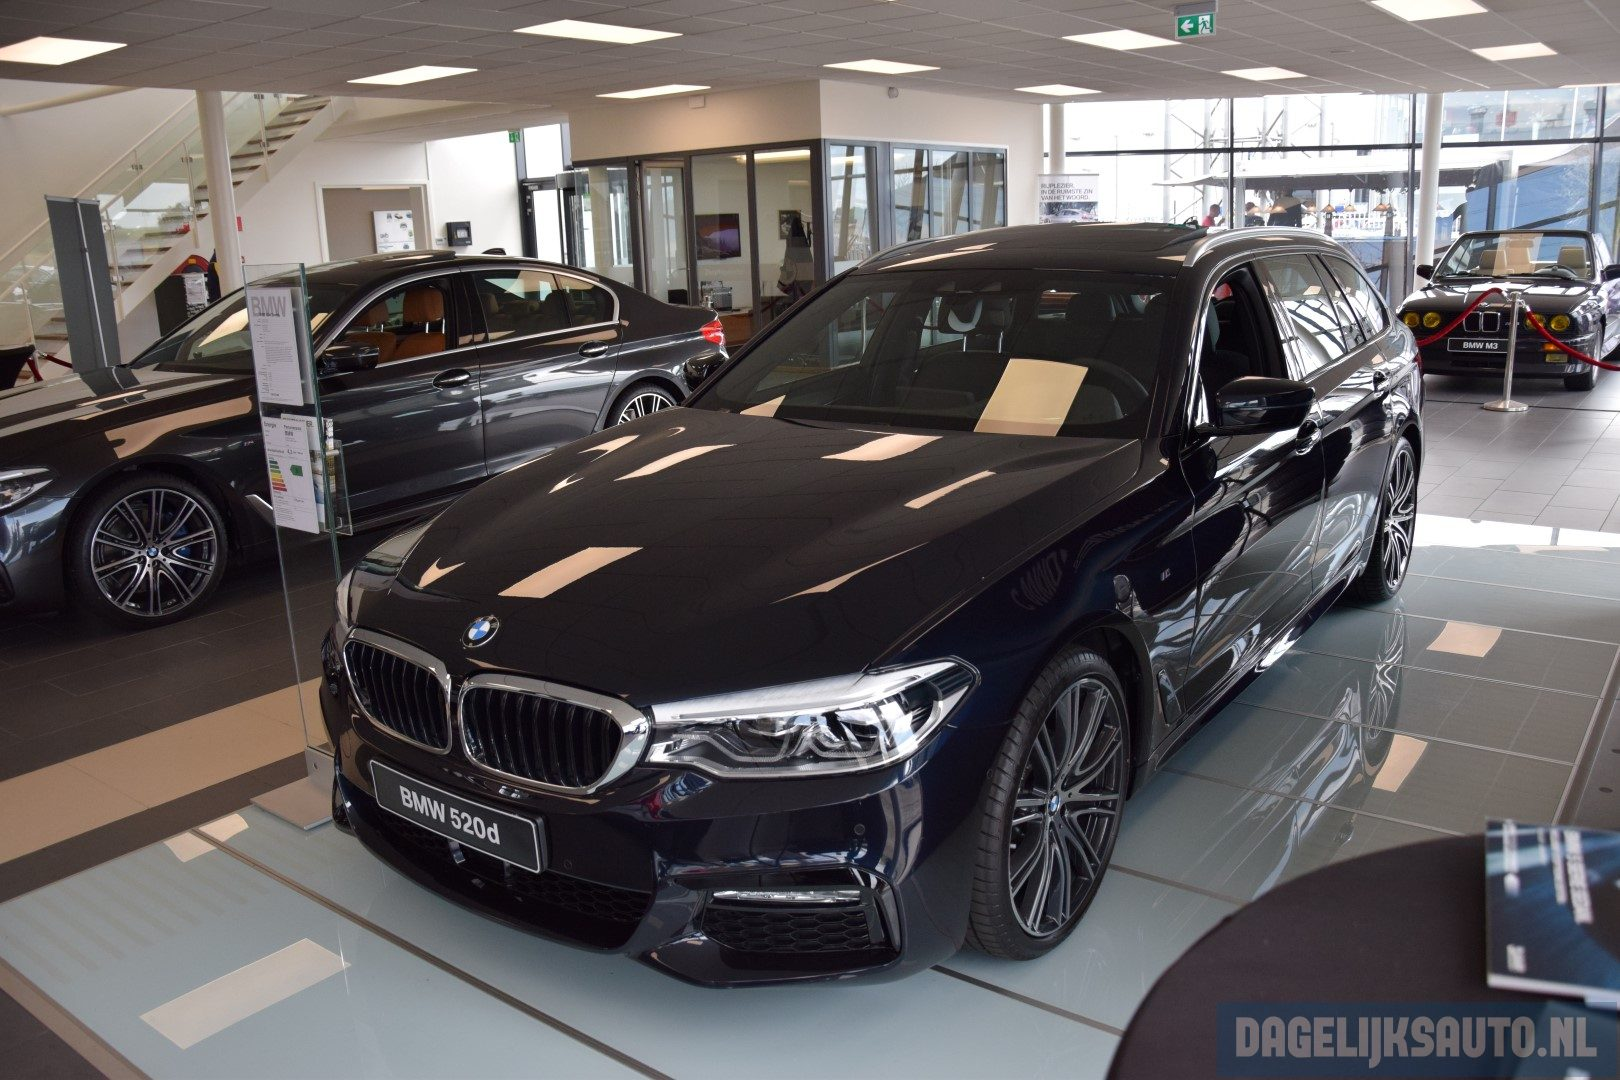 showroomdebuut nieuwe bmw 5 serie touring. Black Bedroom Furniture Sets. Home Design Ideas